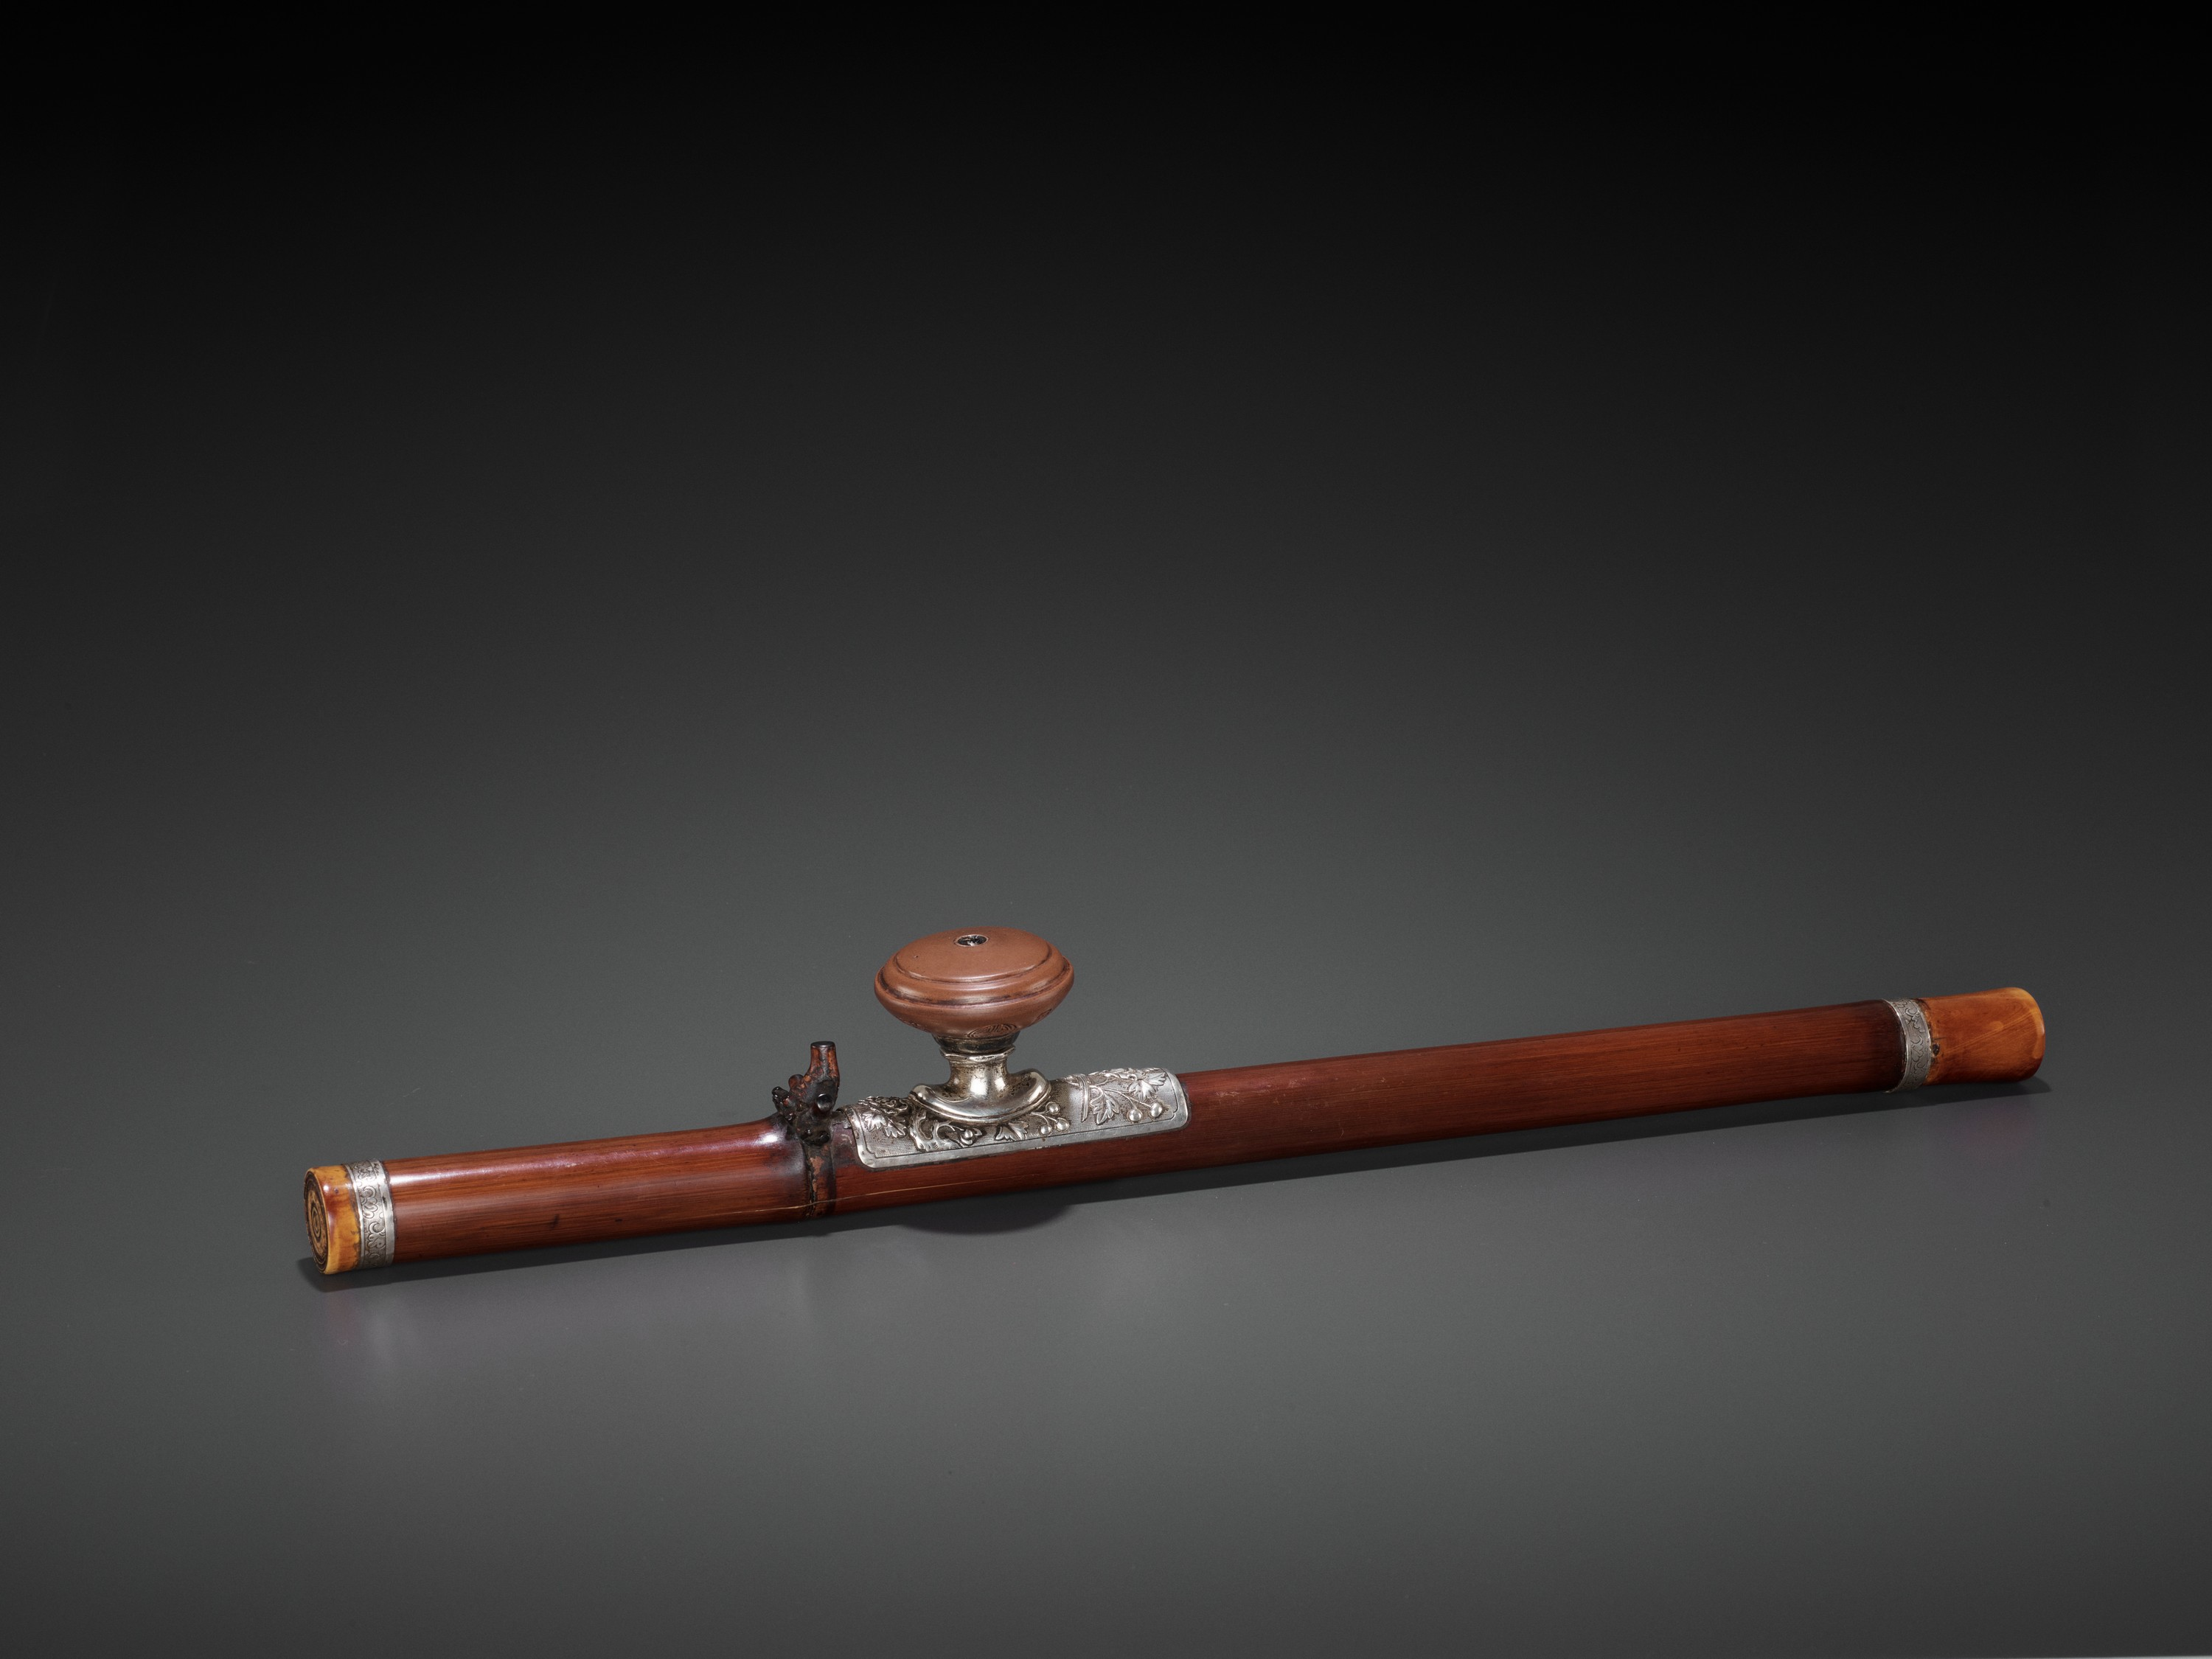 A BAMBOO OPIUM PIPE WITH IVORY, SILVER AND YIXING CERAMIC FITTINGS, LATE QING TO REPUBLIC